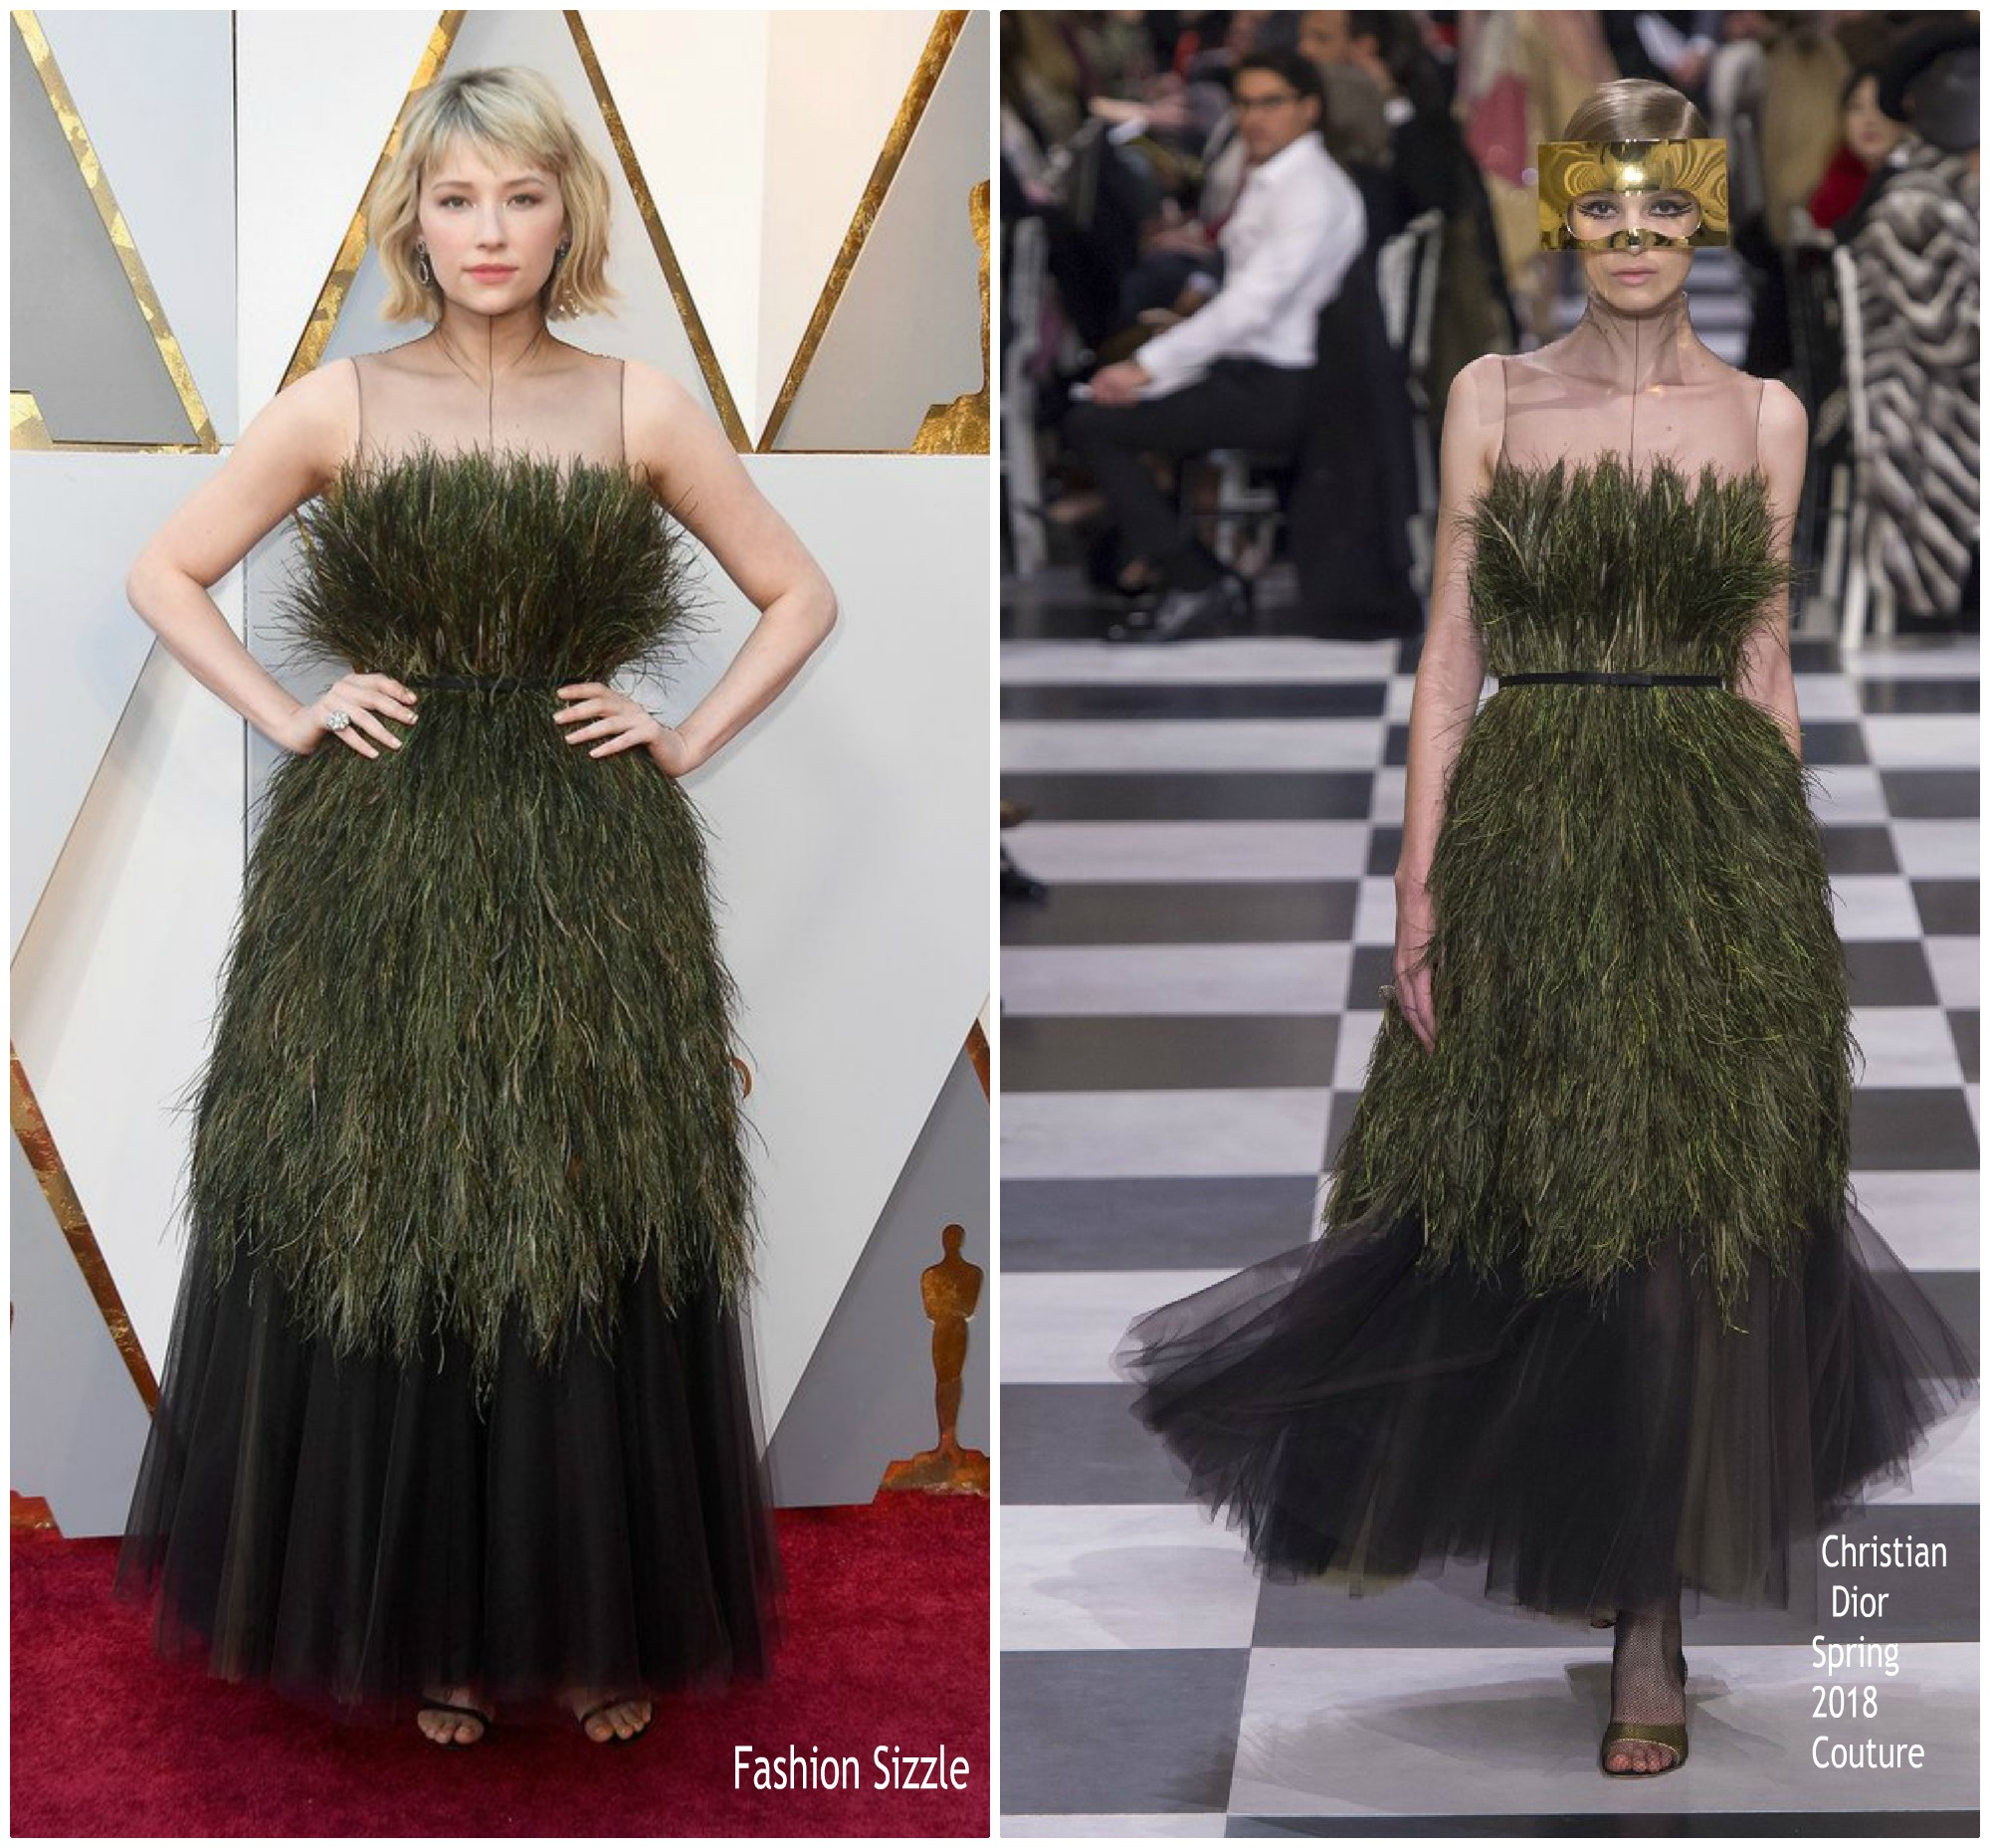 haley-bennett-in0christian-dior-couture-2018-oscars